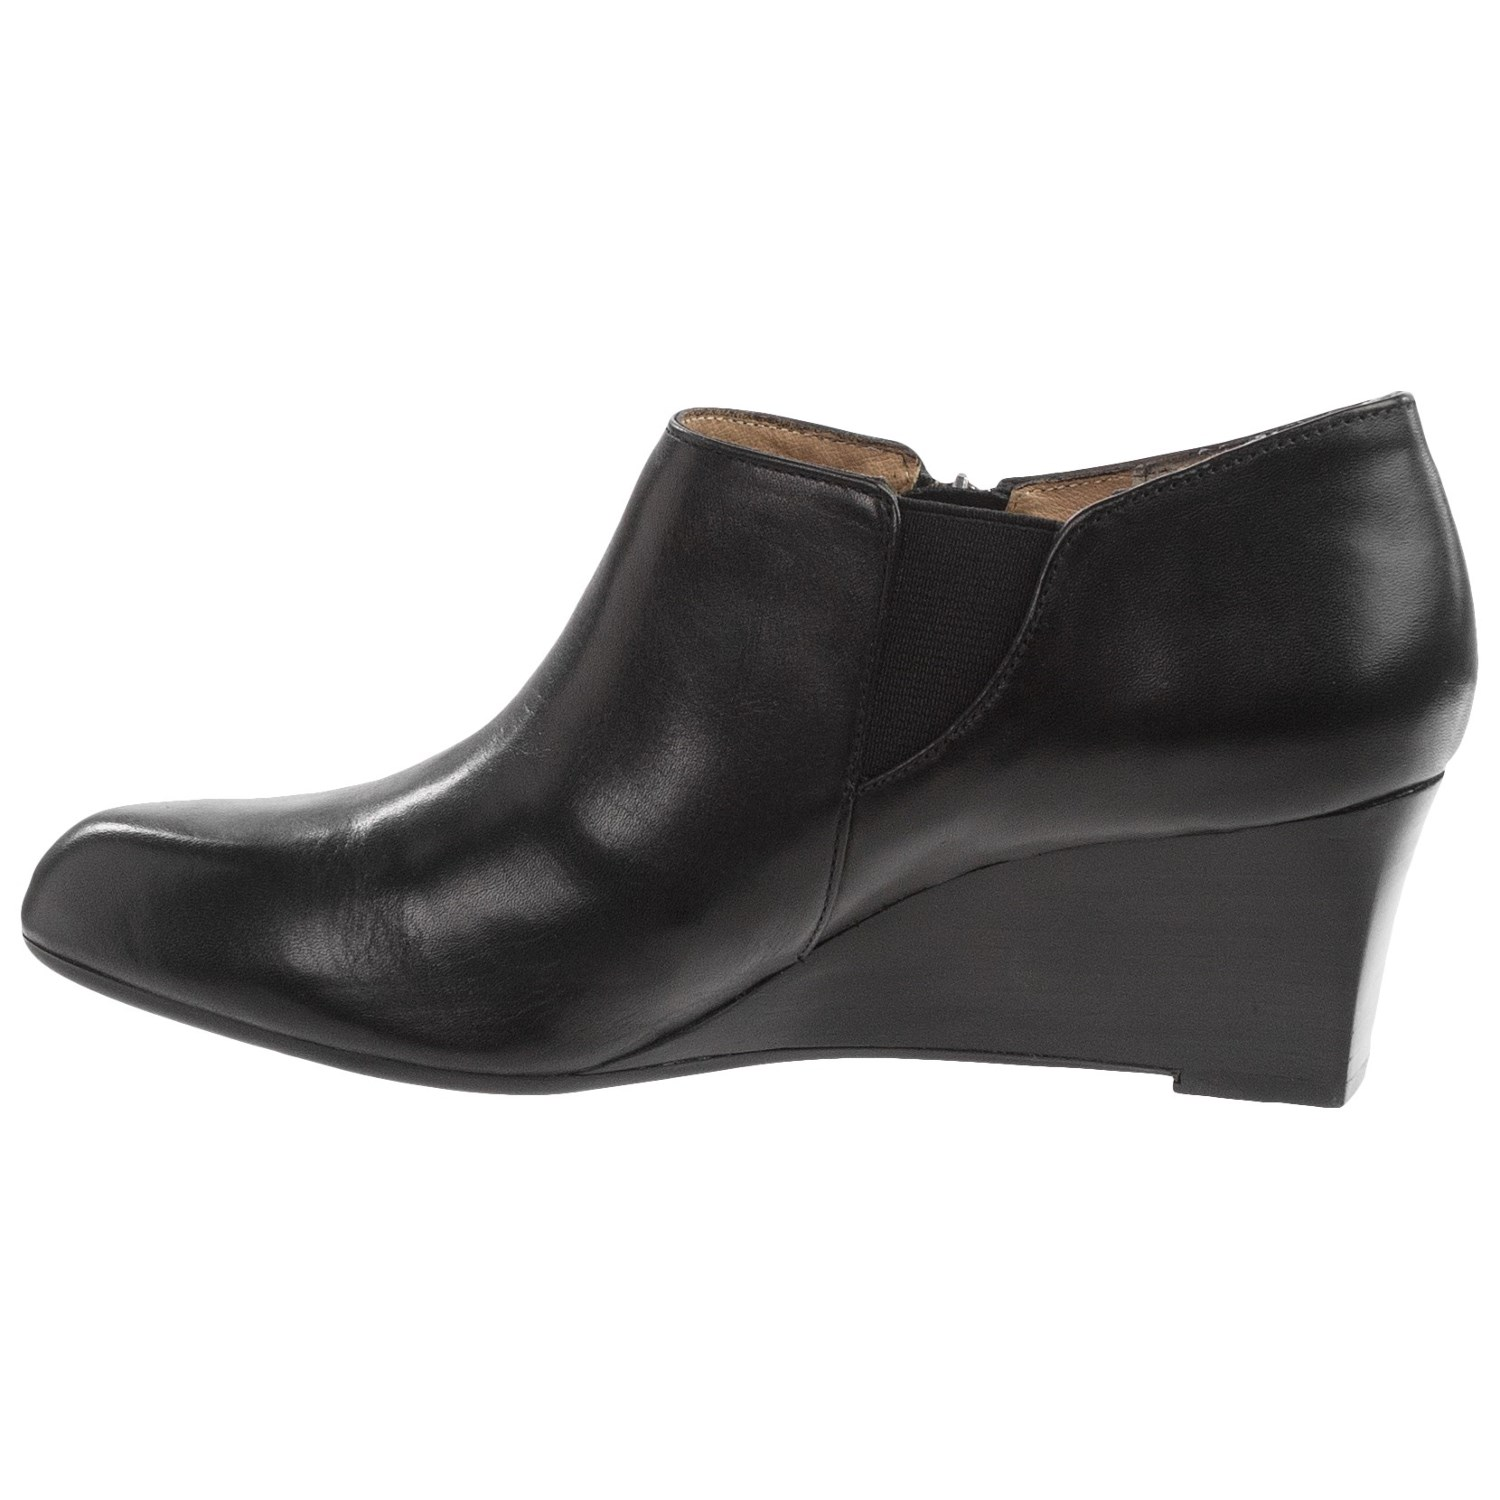 Adrienne Vittadini Midge Wedge Boots (For Women) - Save 66%